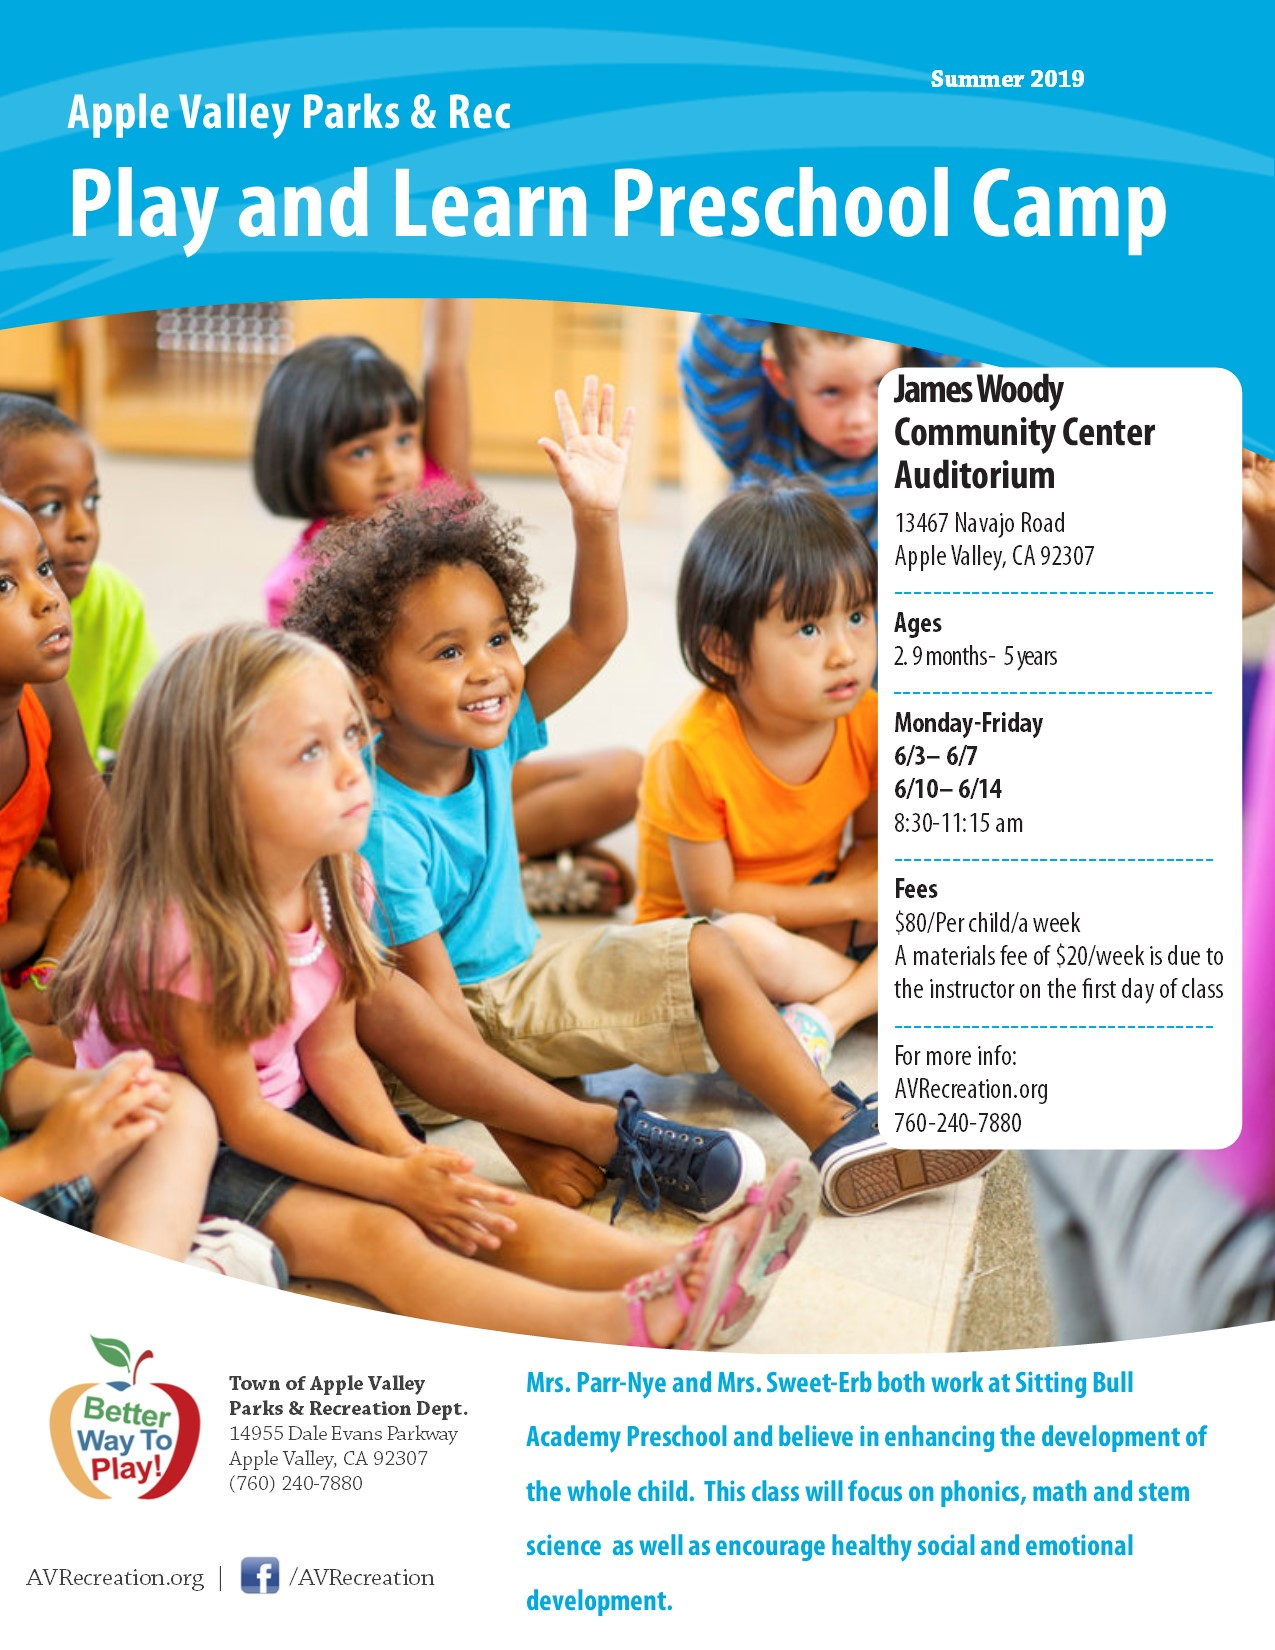 Play and Learn Preschool